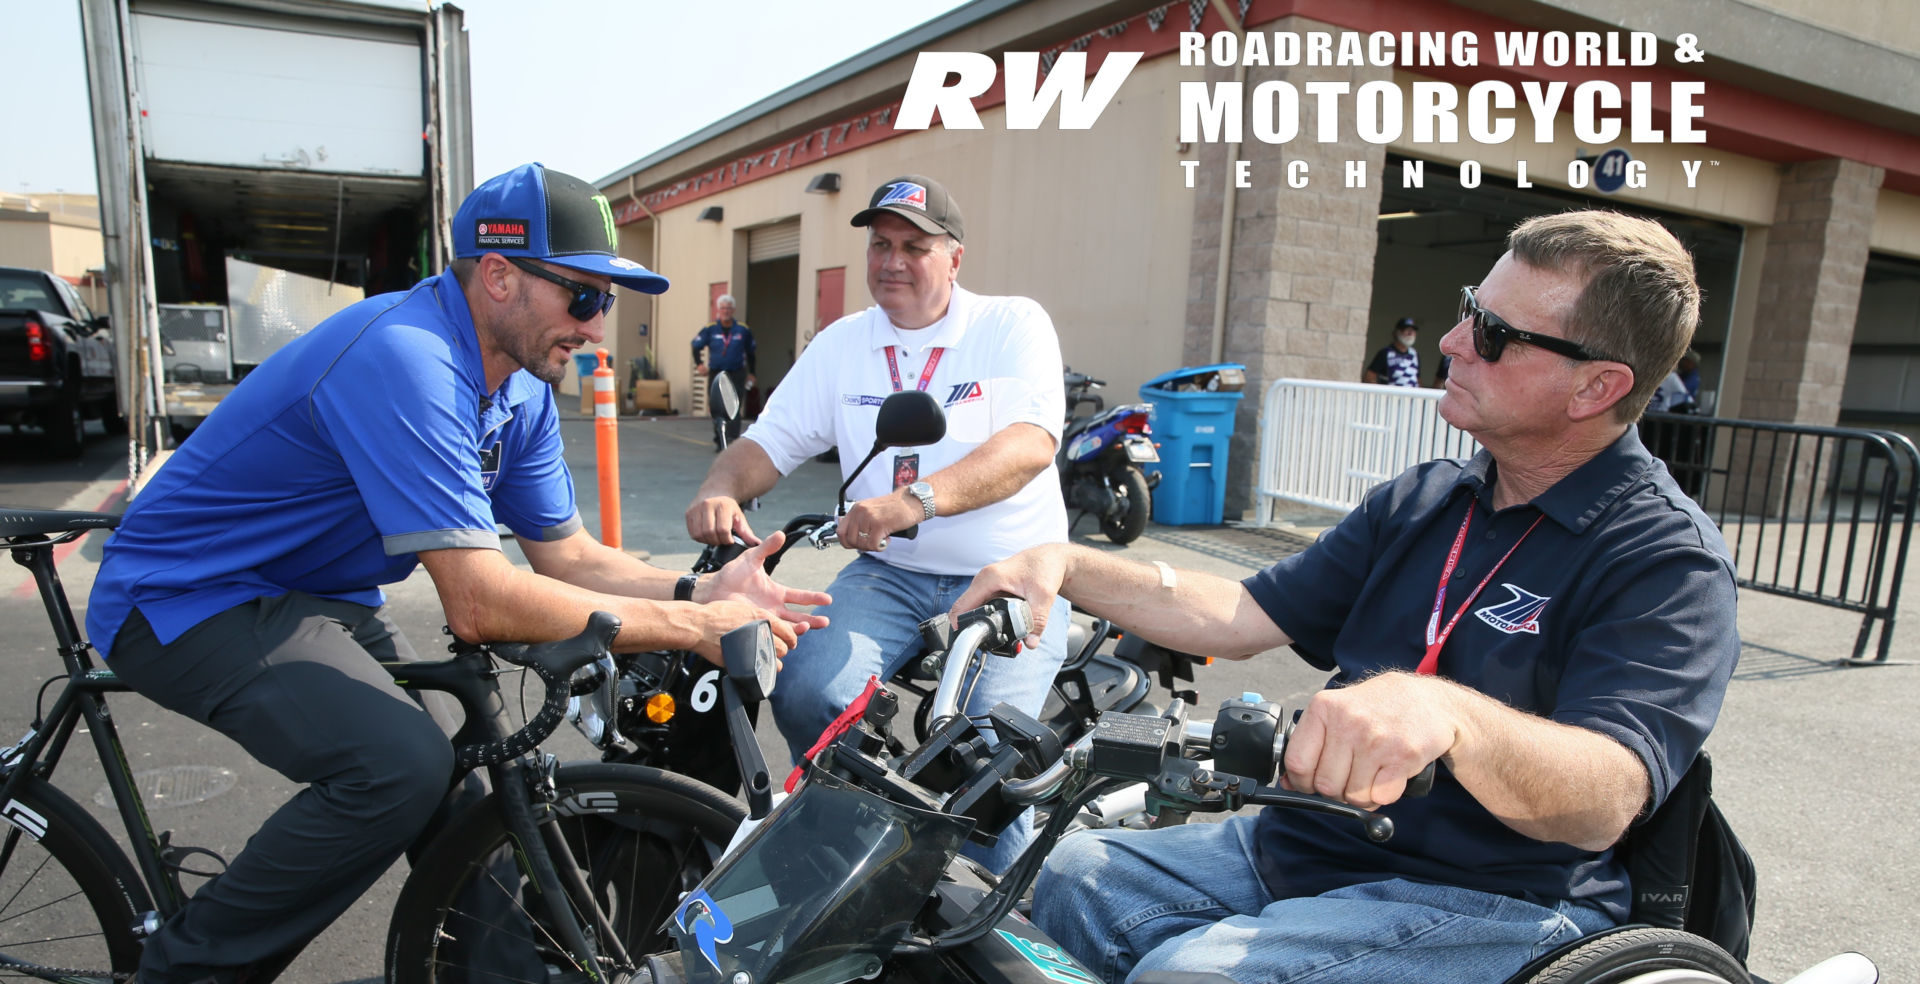 MotoAmerica President Wayne Rainey (right), MotoAmerica Chief Operating Officer Chuck Aksland (center), and four-time AMA Superbike Champion Josh Hayes (left) during a MotoAmerica event at Sonoma Raceway in 2018. Photo by Brian J. Nelson.